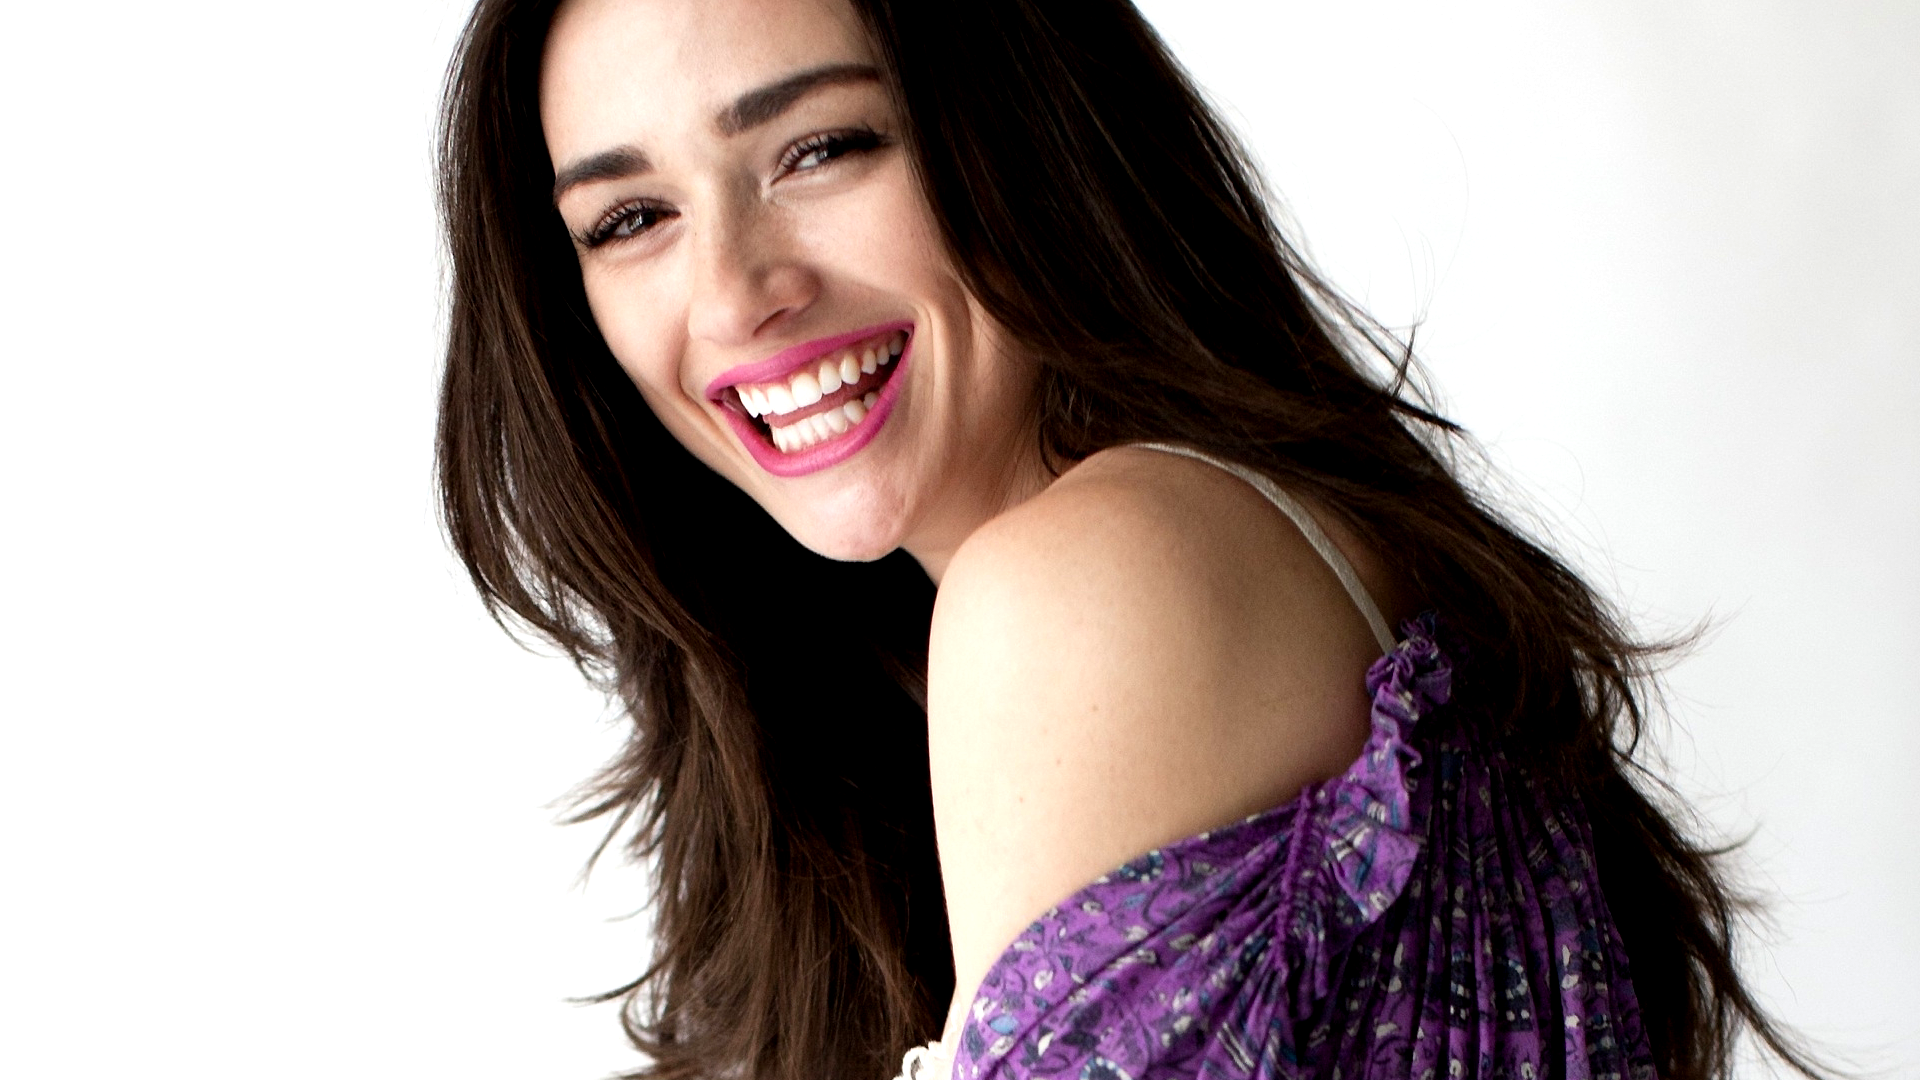 1920x1080 - Crystal Reed Wallpapers 8